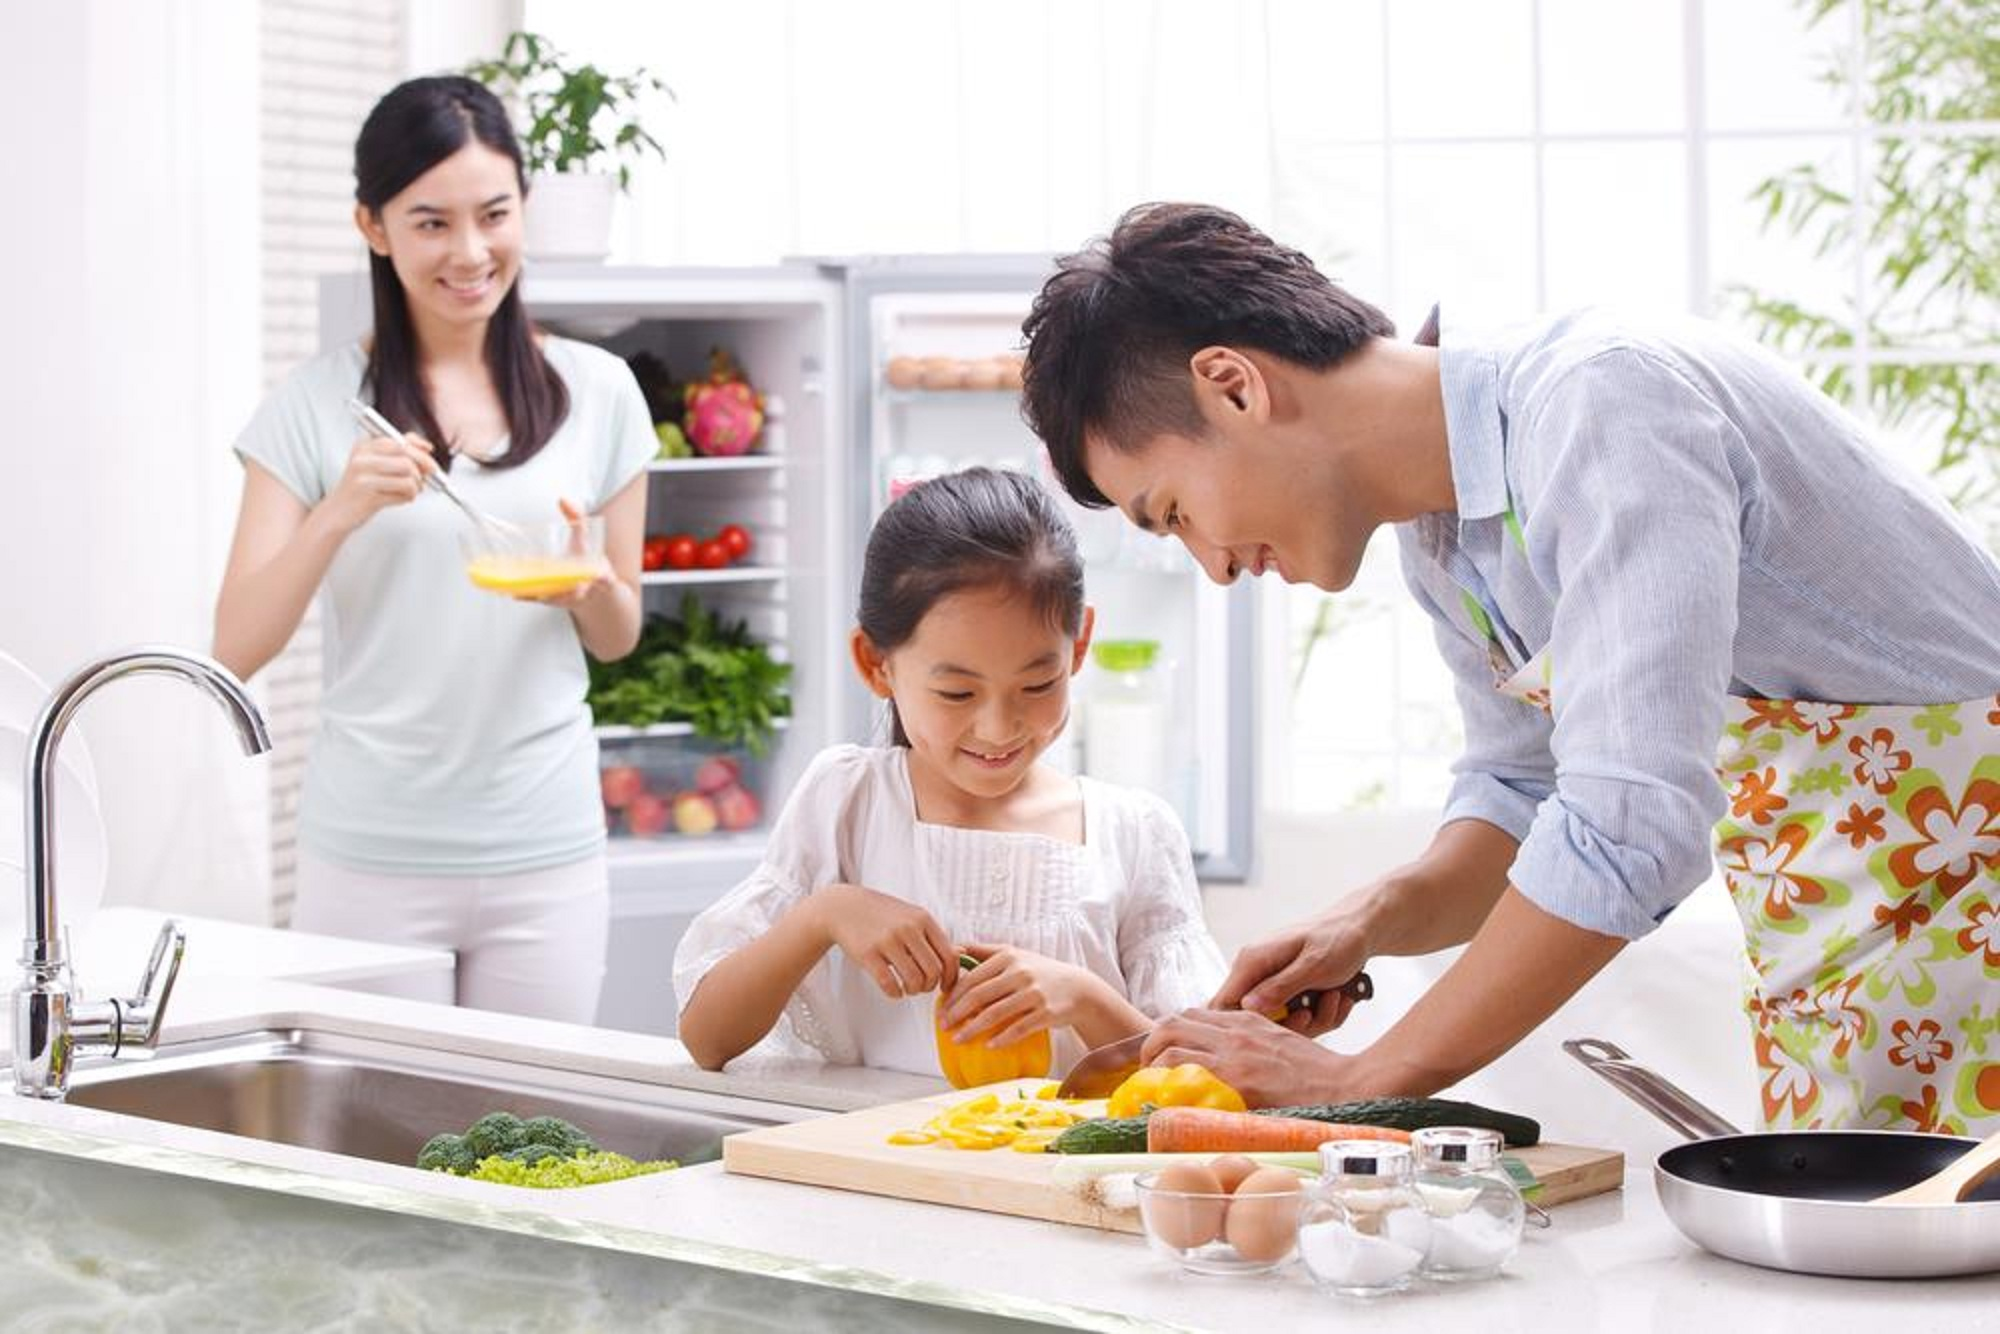 Celebrate Good Food with Rinnai, No. 1 Appliance Brand in Japan